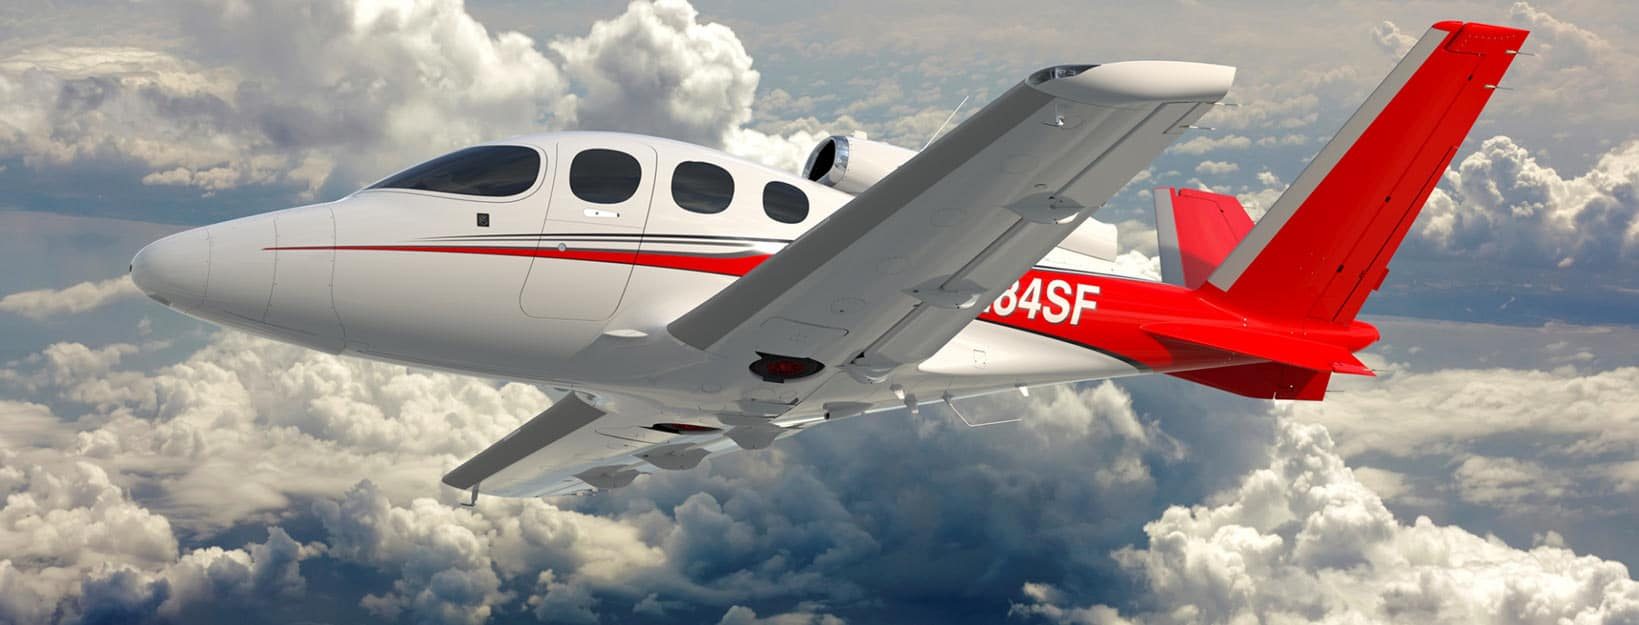 The Cirrus Vision SF50 Jet in flight